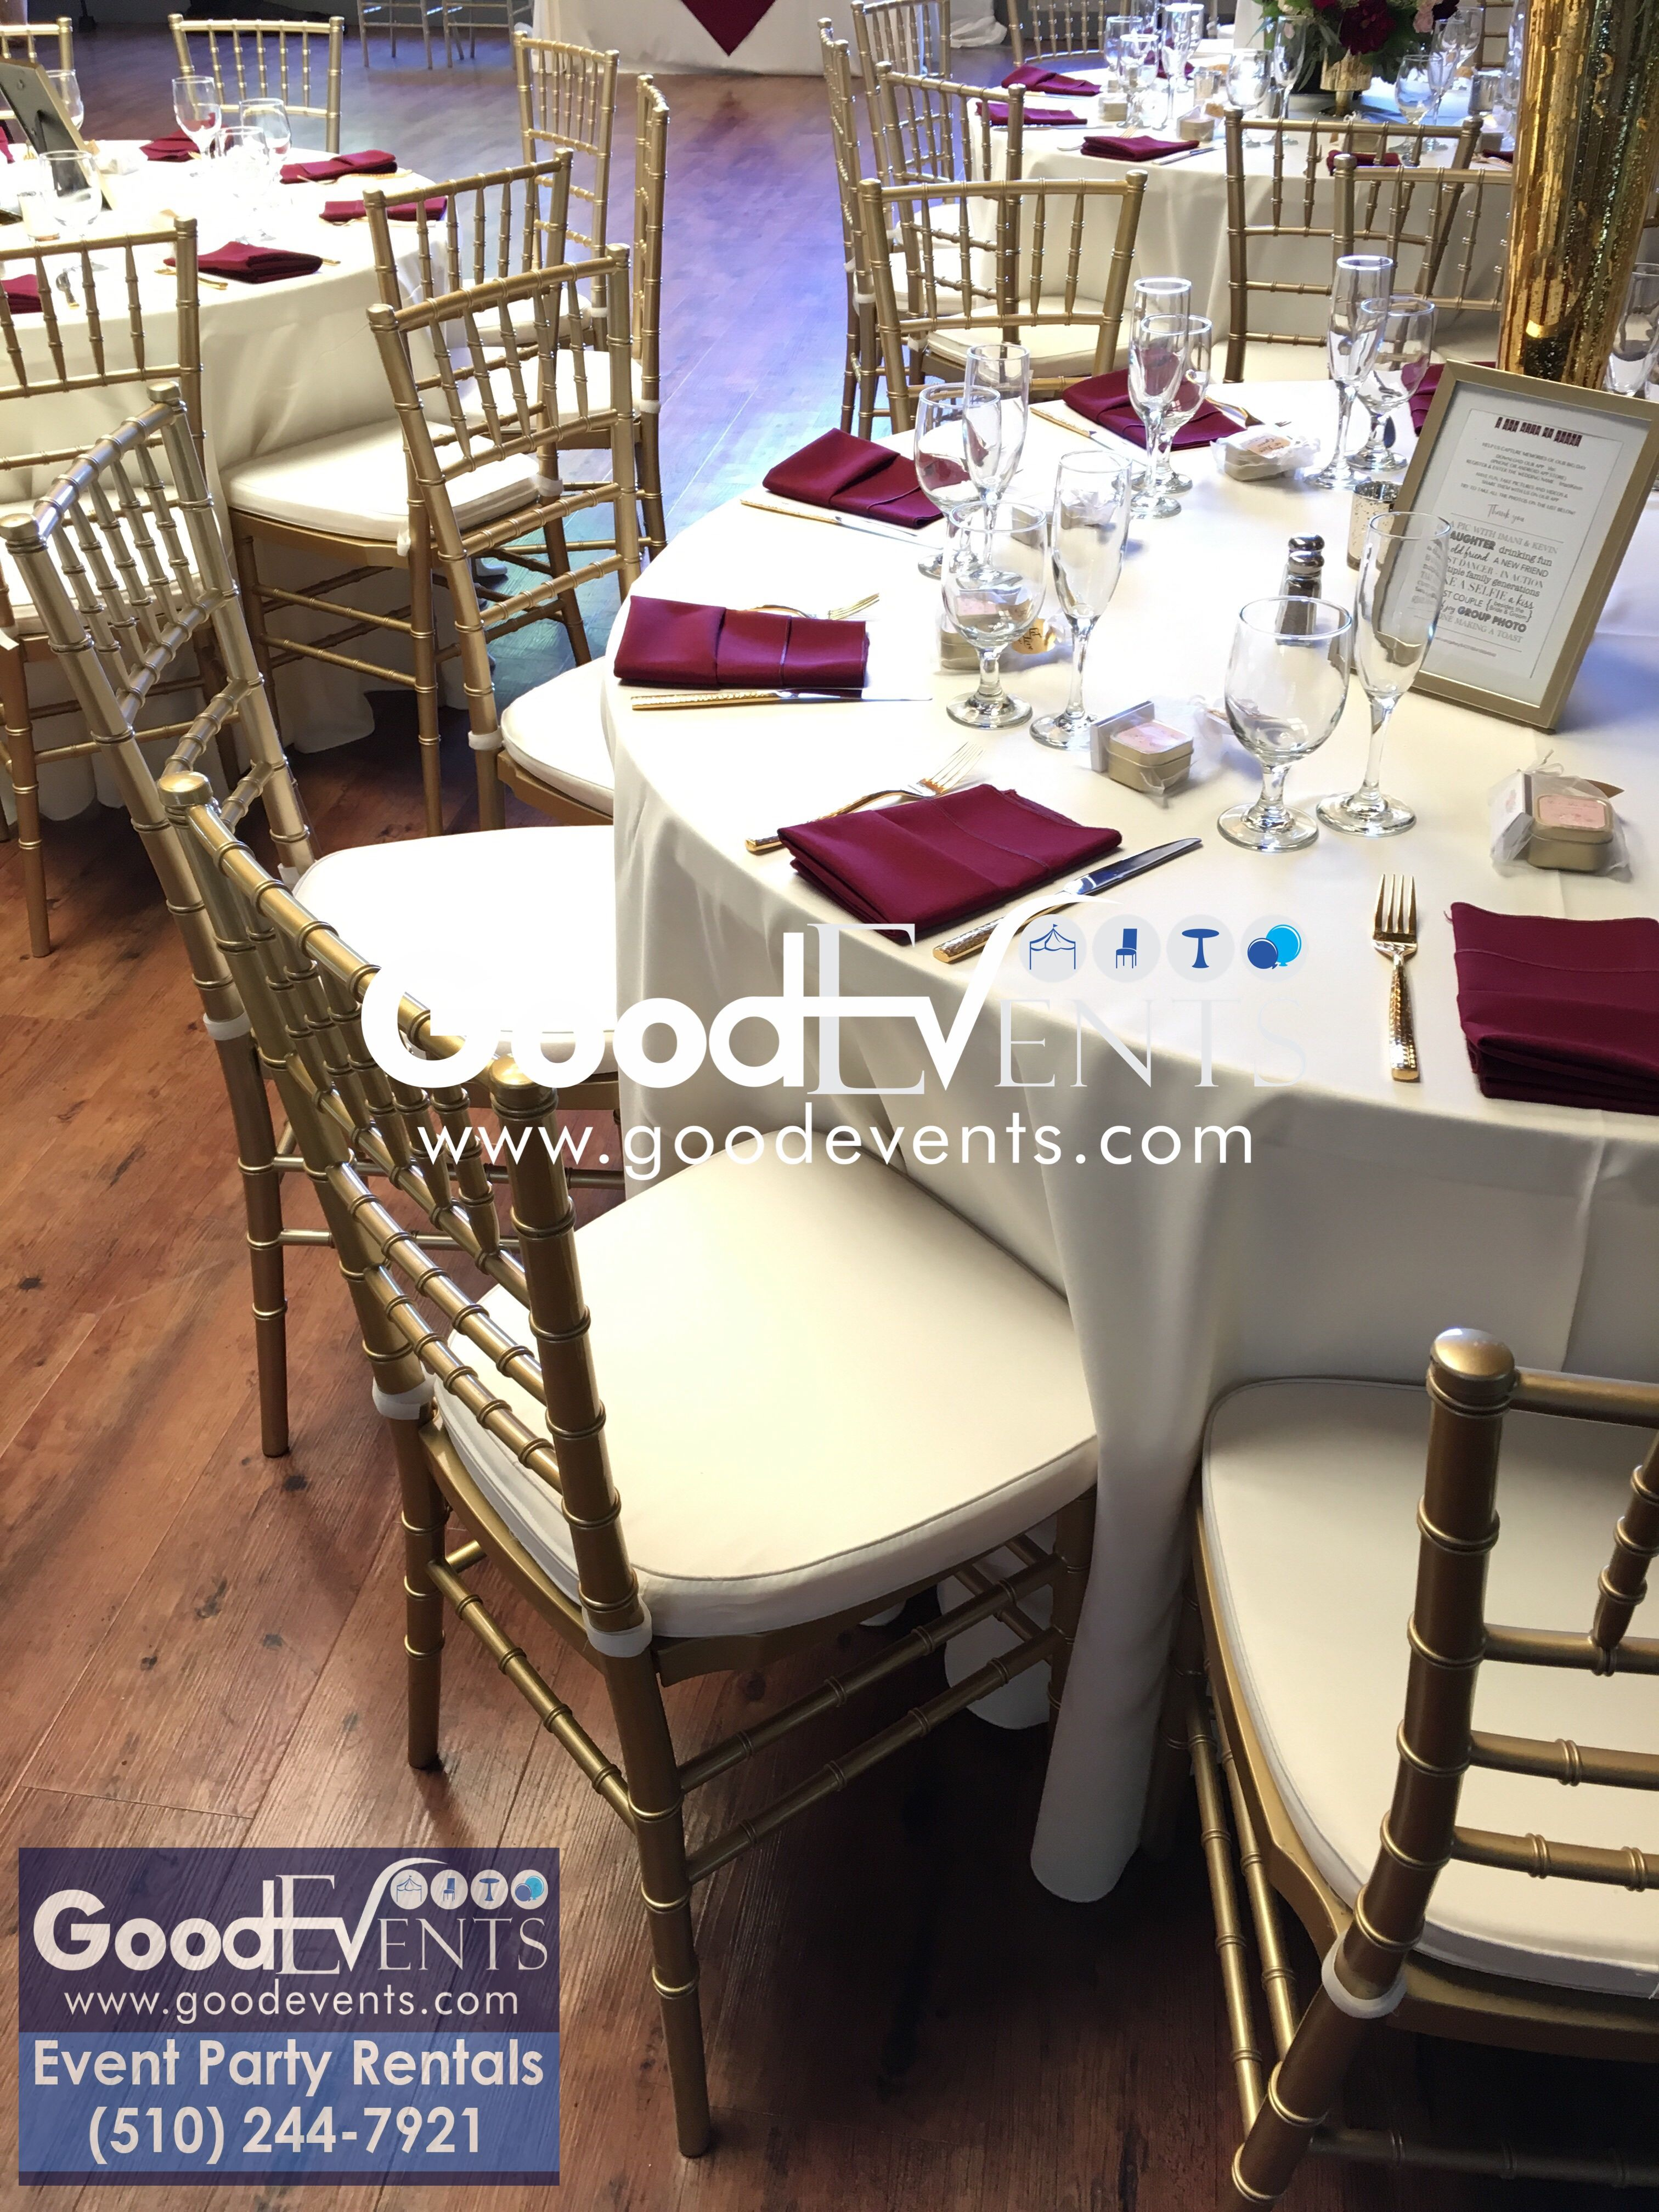 Rent tables and chairs by GOOD EVENTS on Gallery GOOD